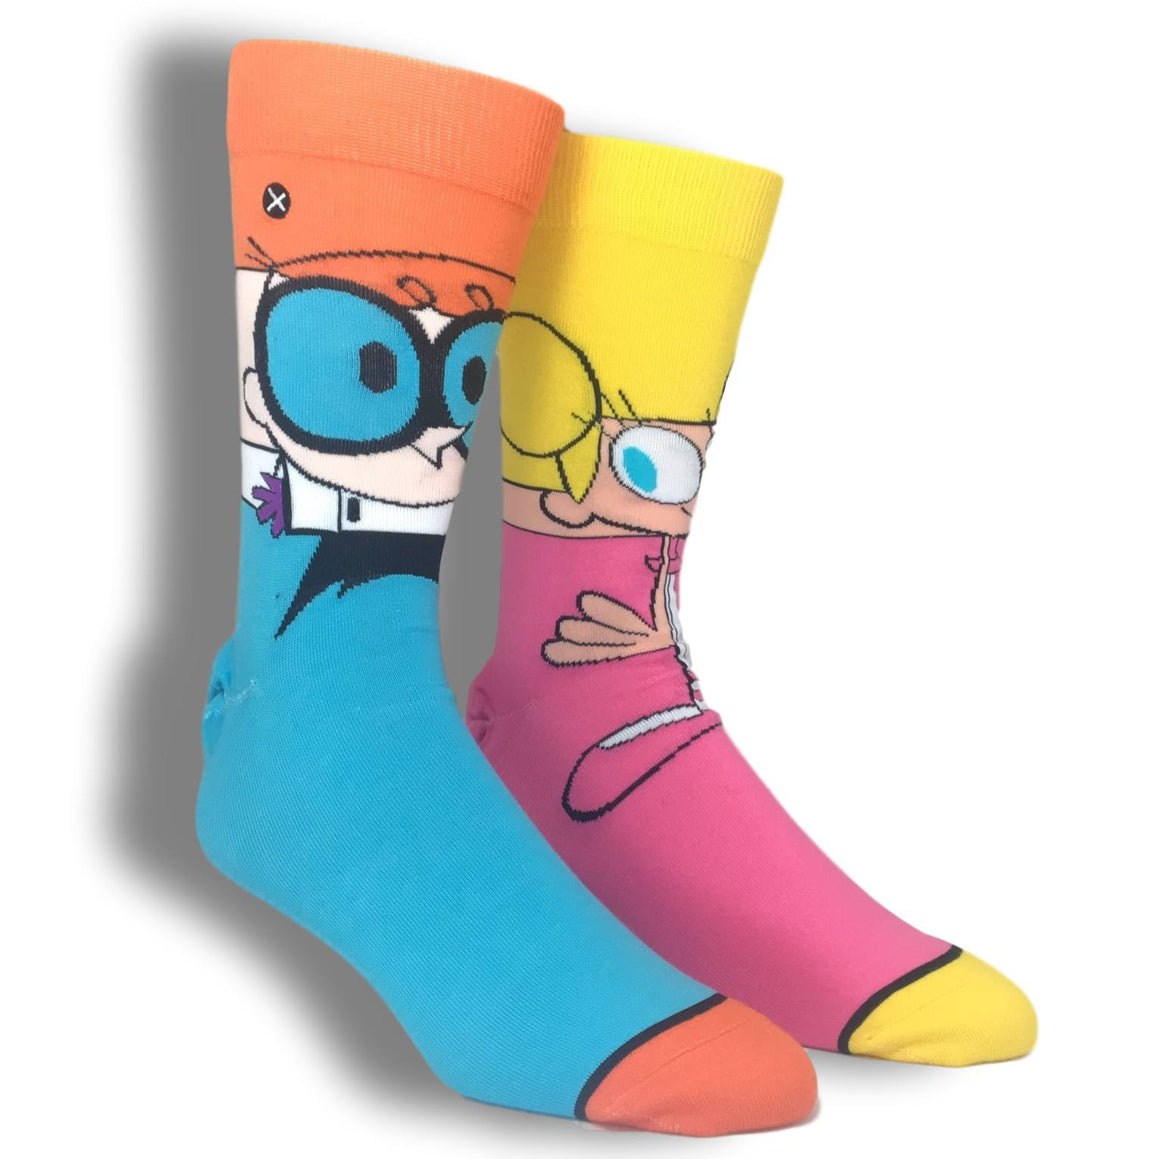 Cartoon Network Dexter's Laboratory, Dexter & DeeDee 360 Caroon Socks by Odd Sox - The Sock Spot